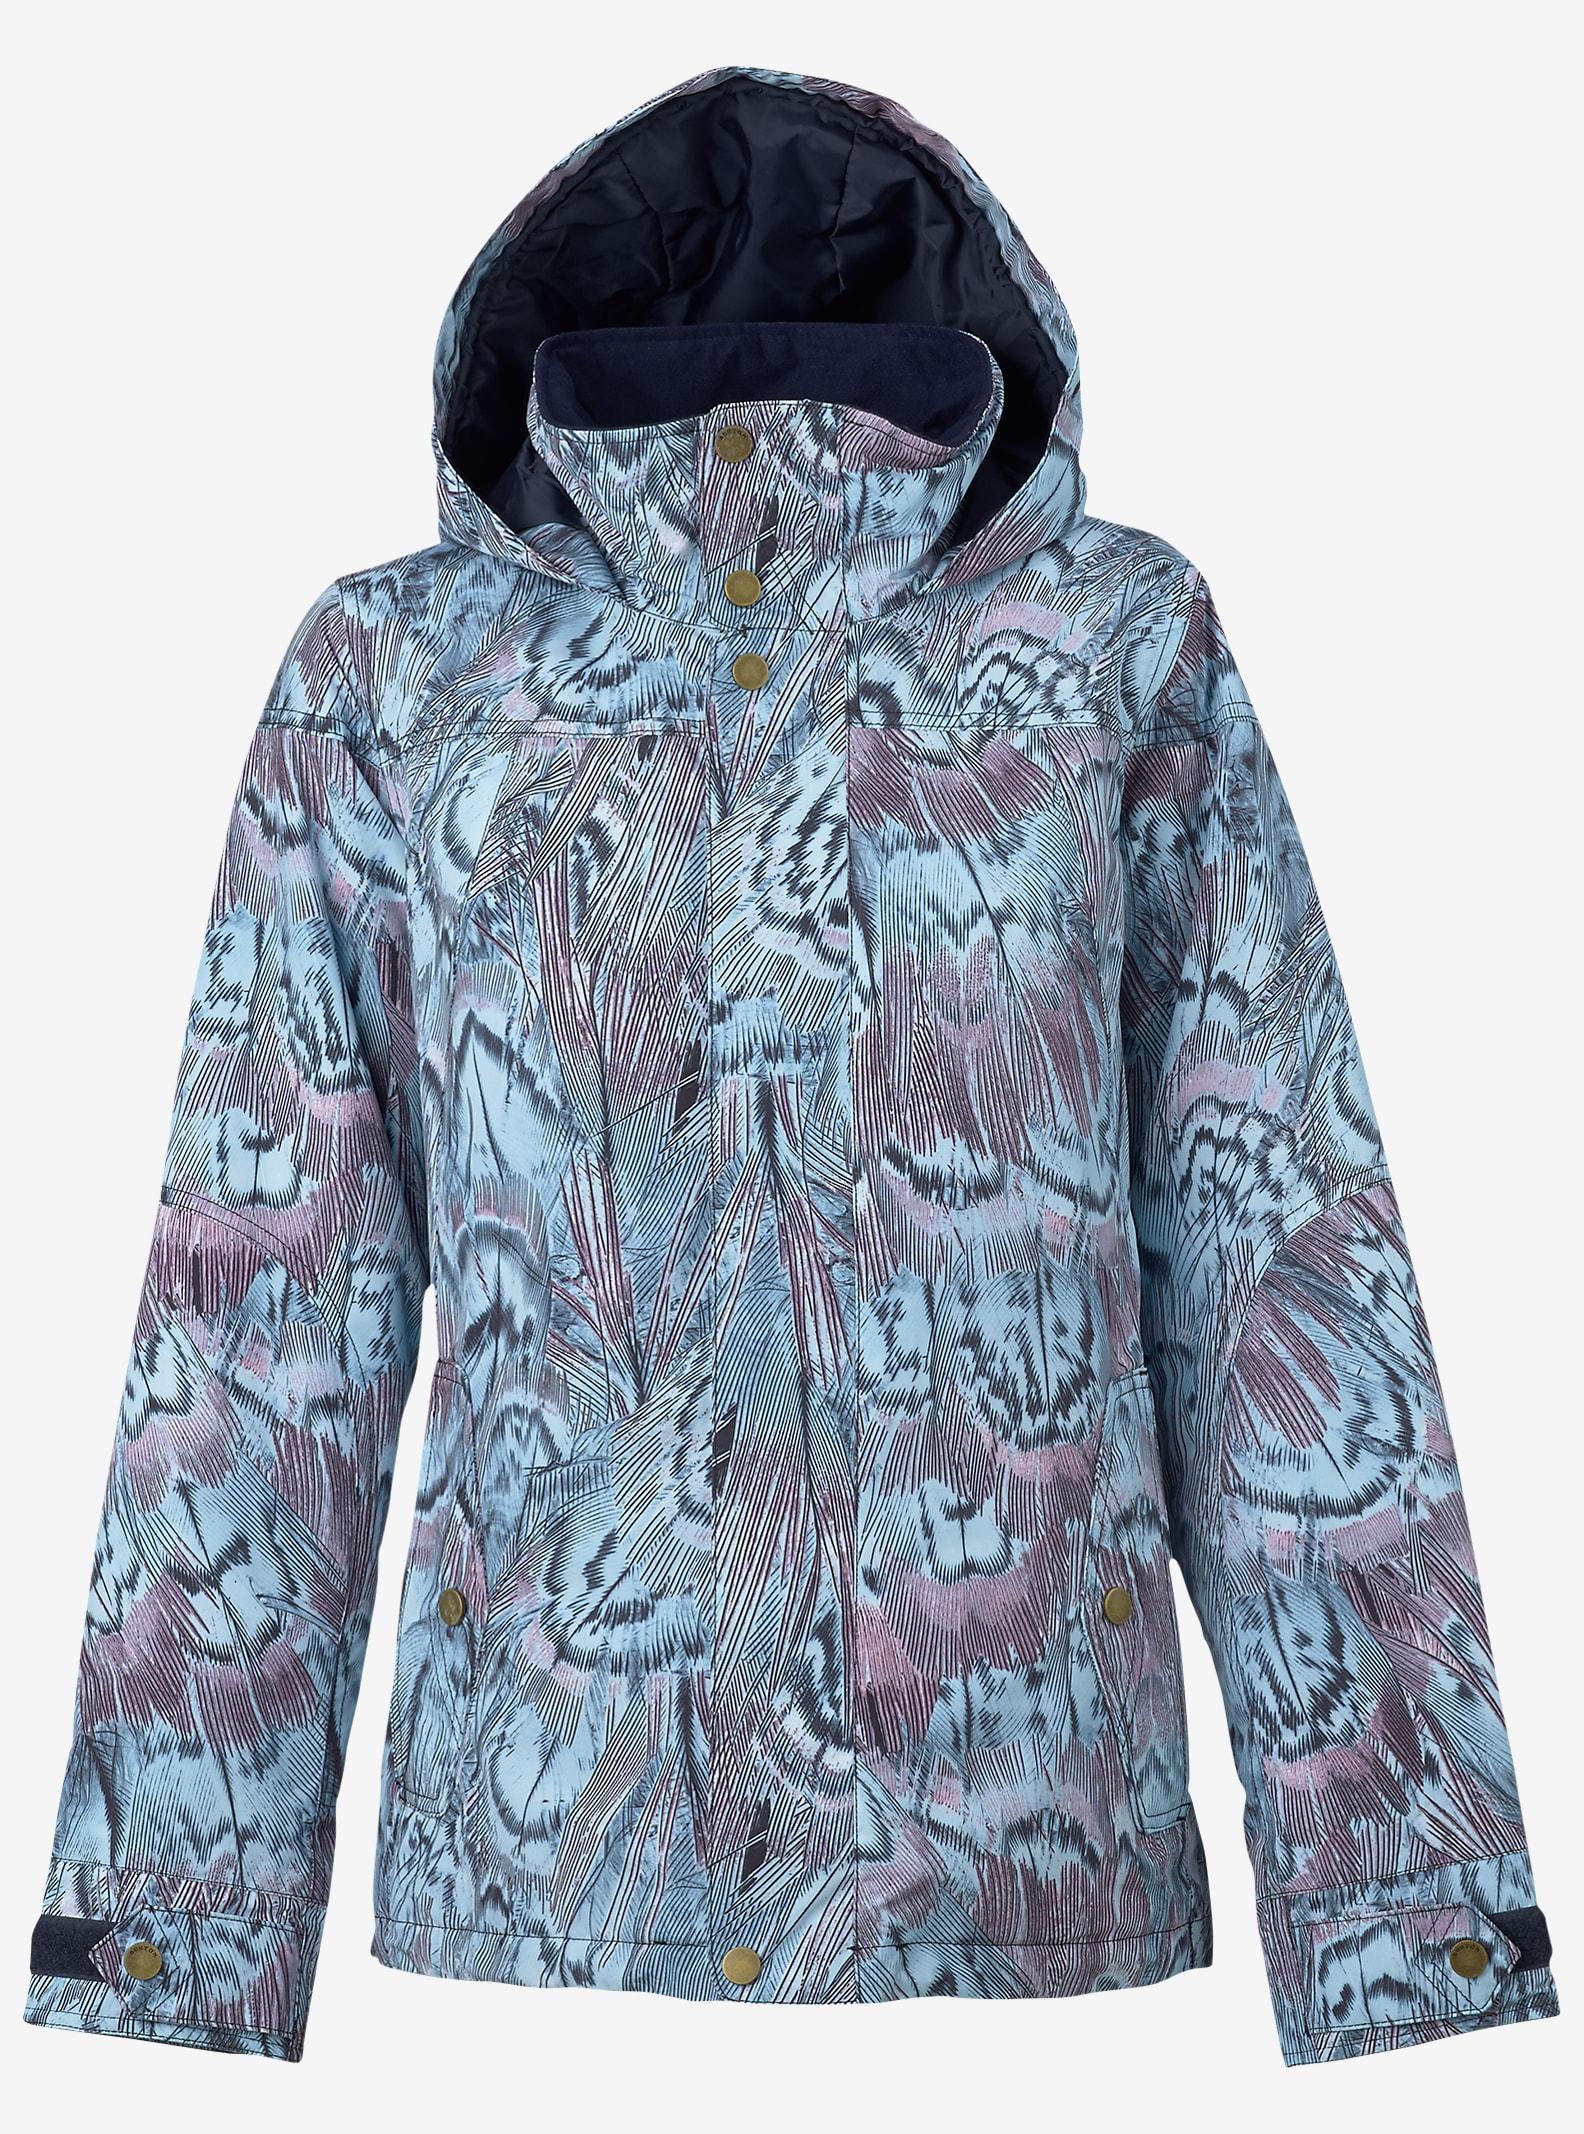 Burton Jet Set Jacket shown in Feathers